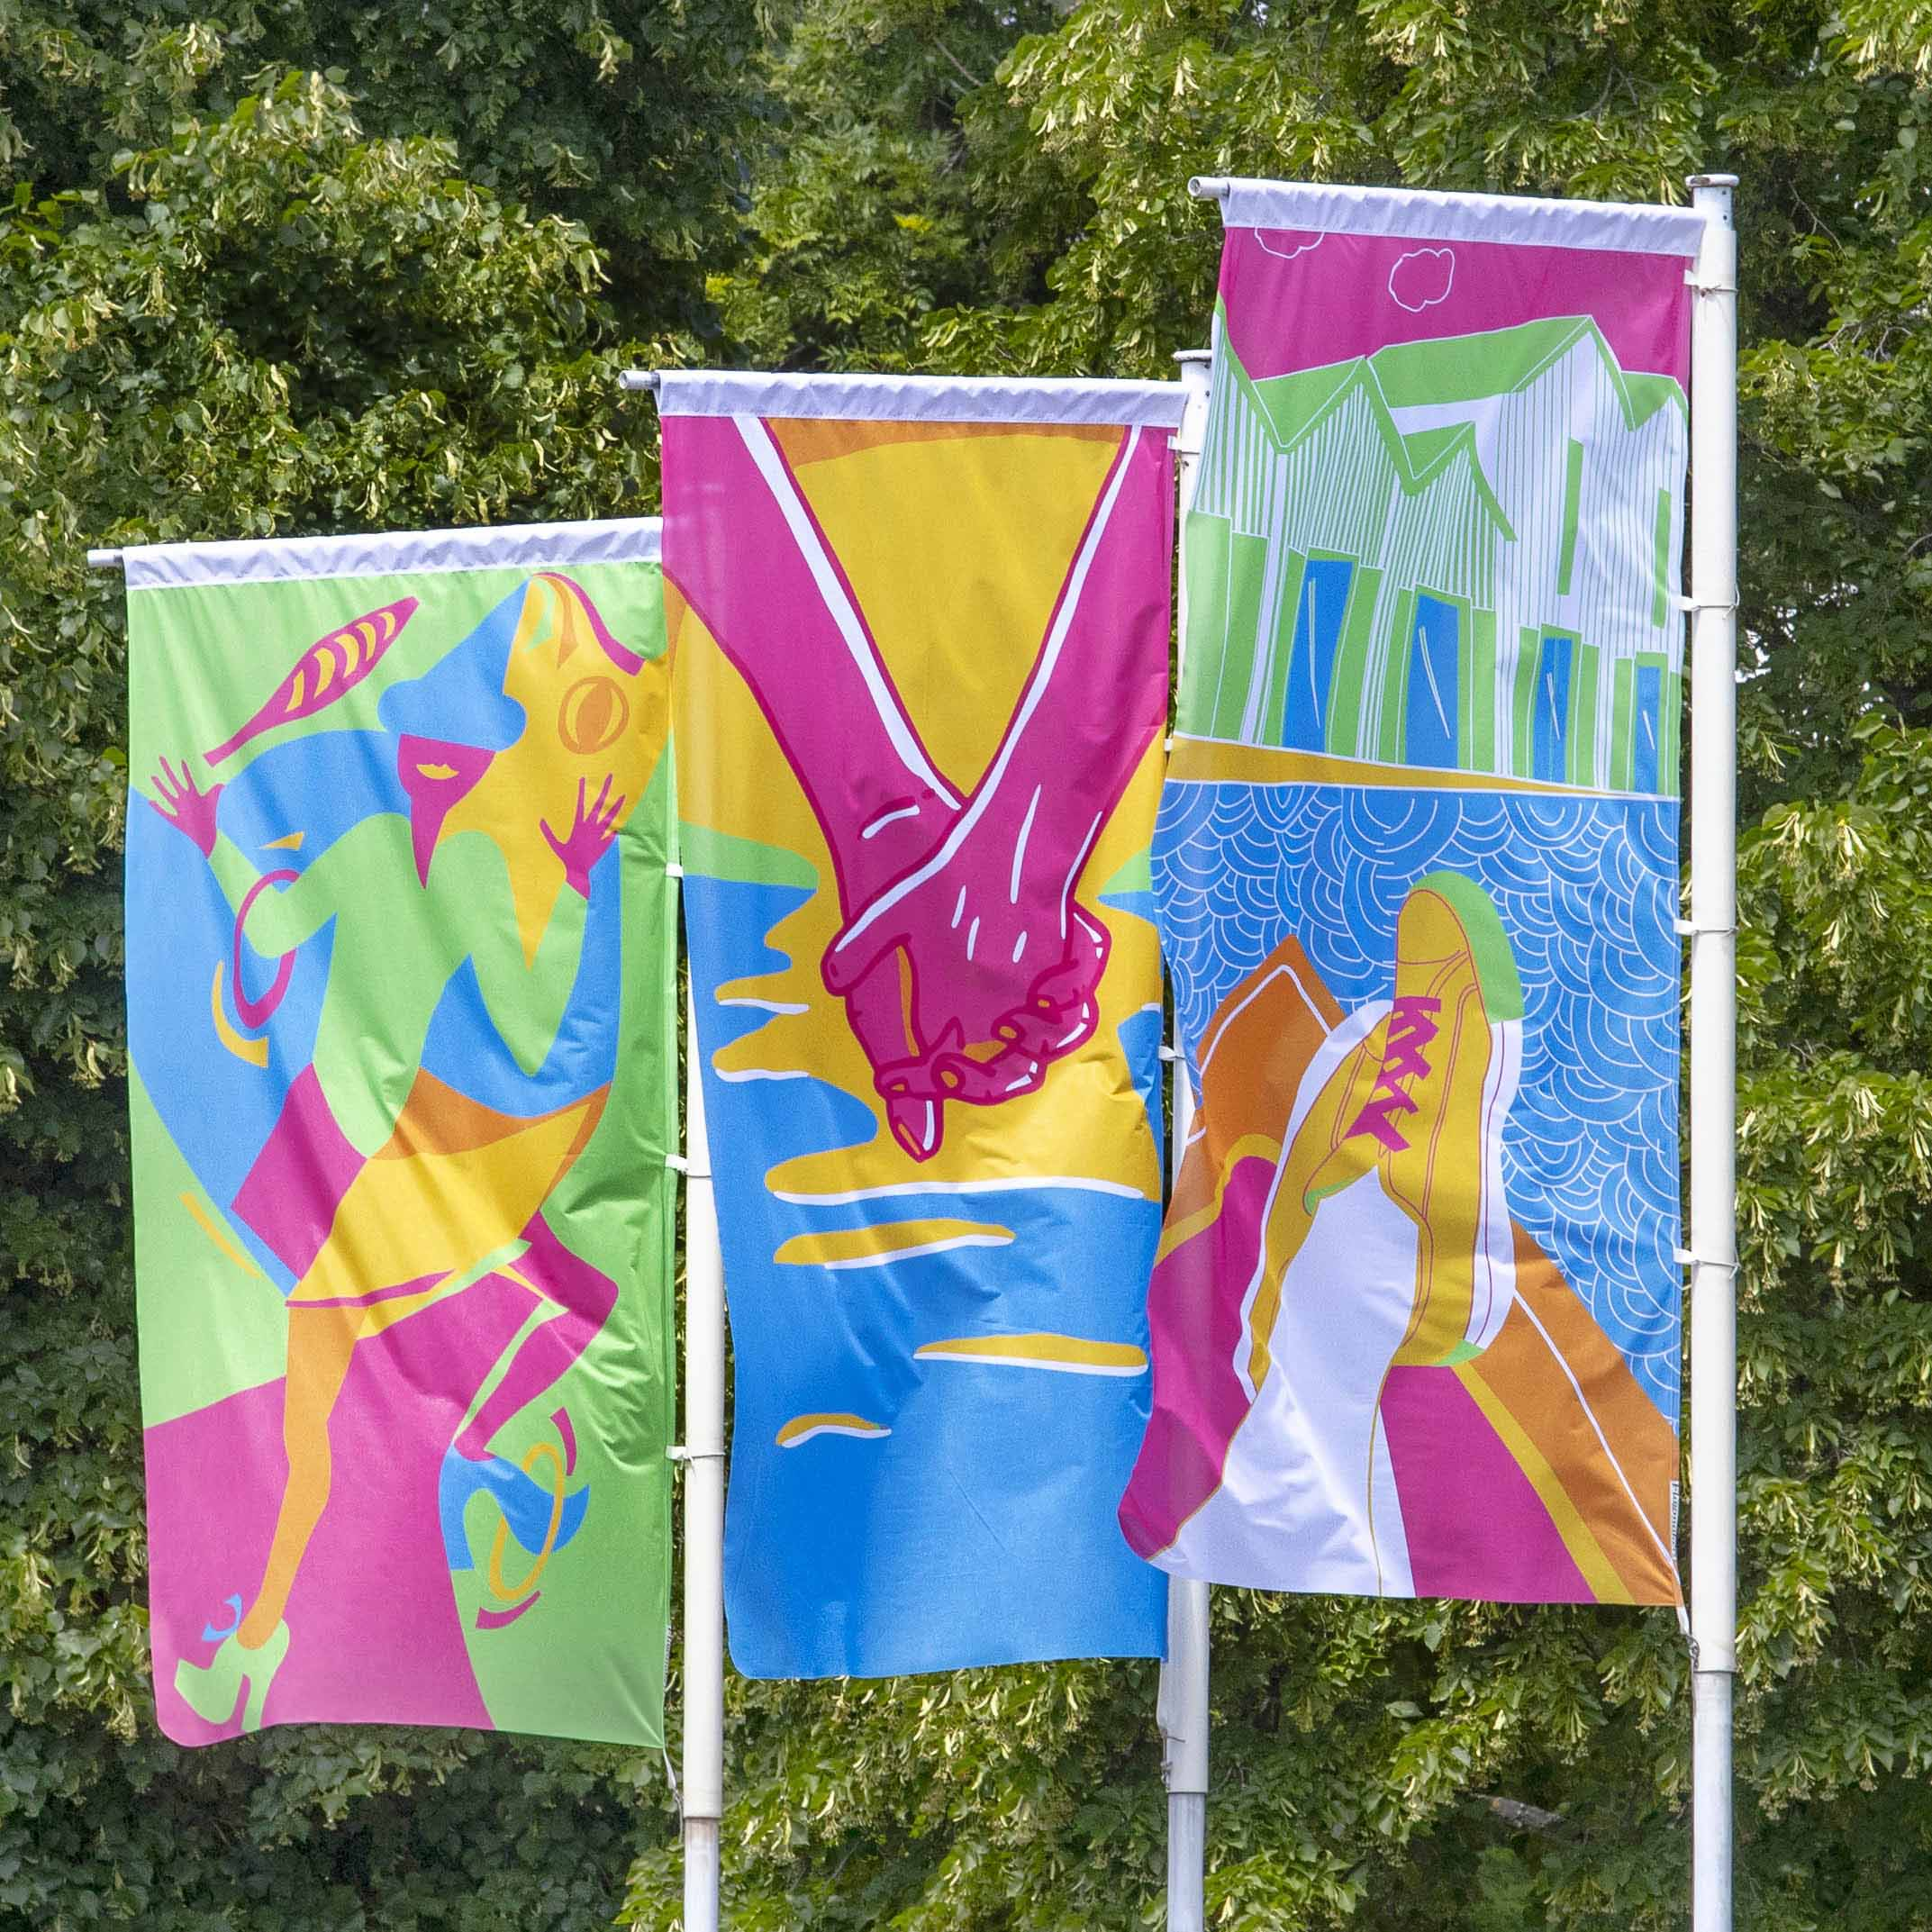 Three colourful street flags displayed beside a tree